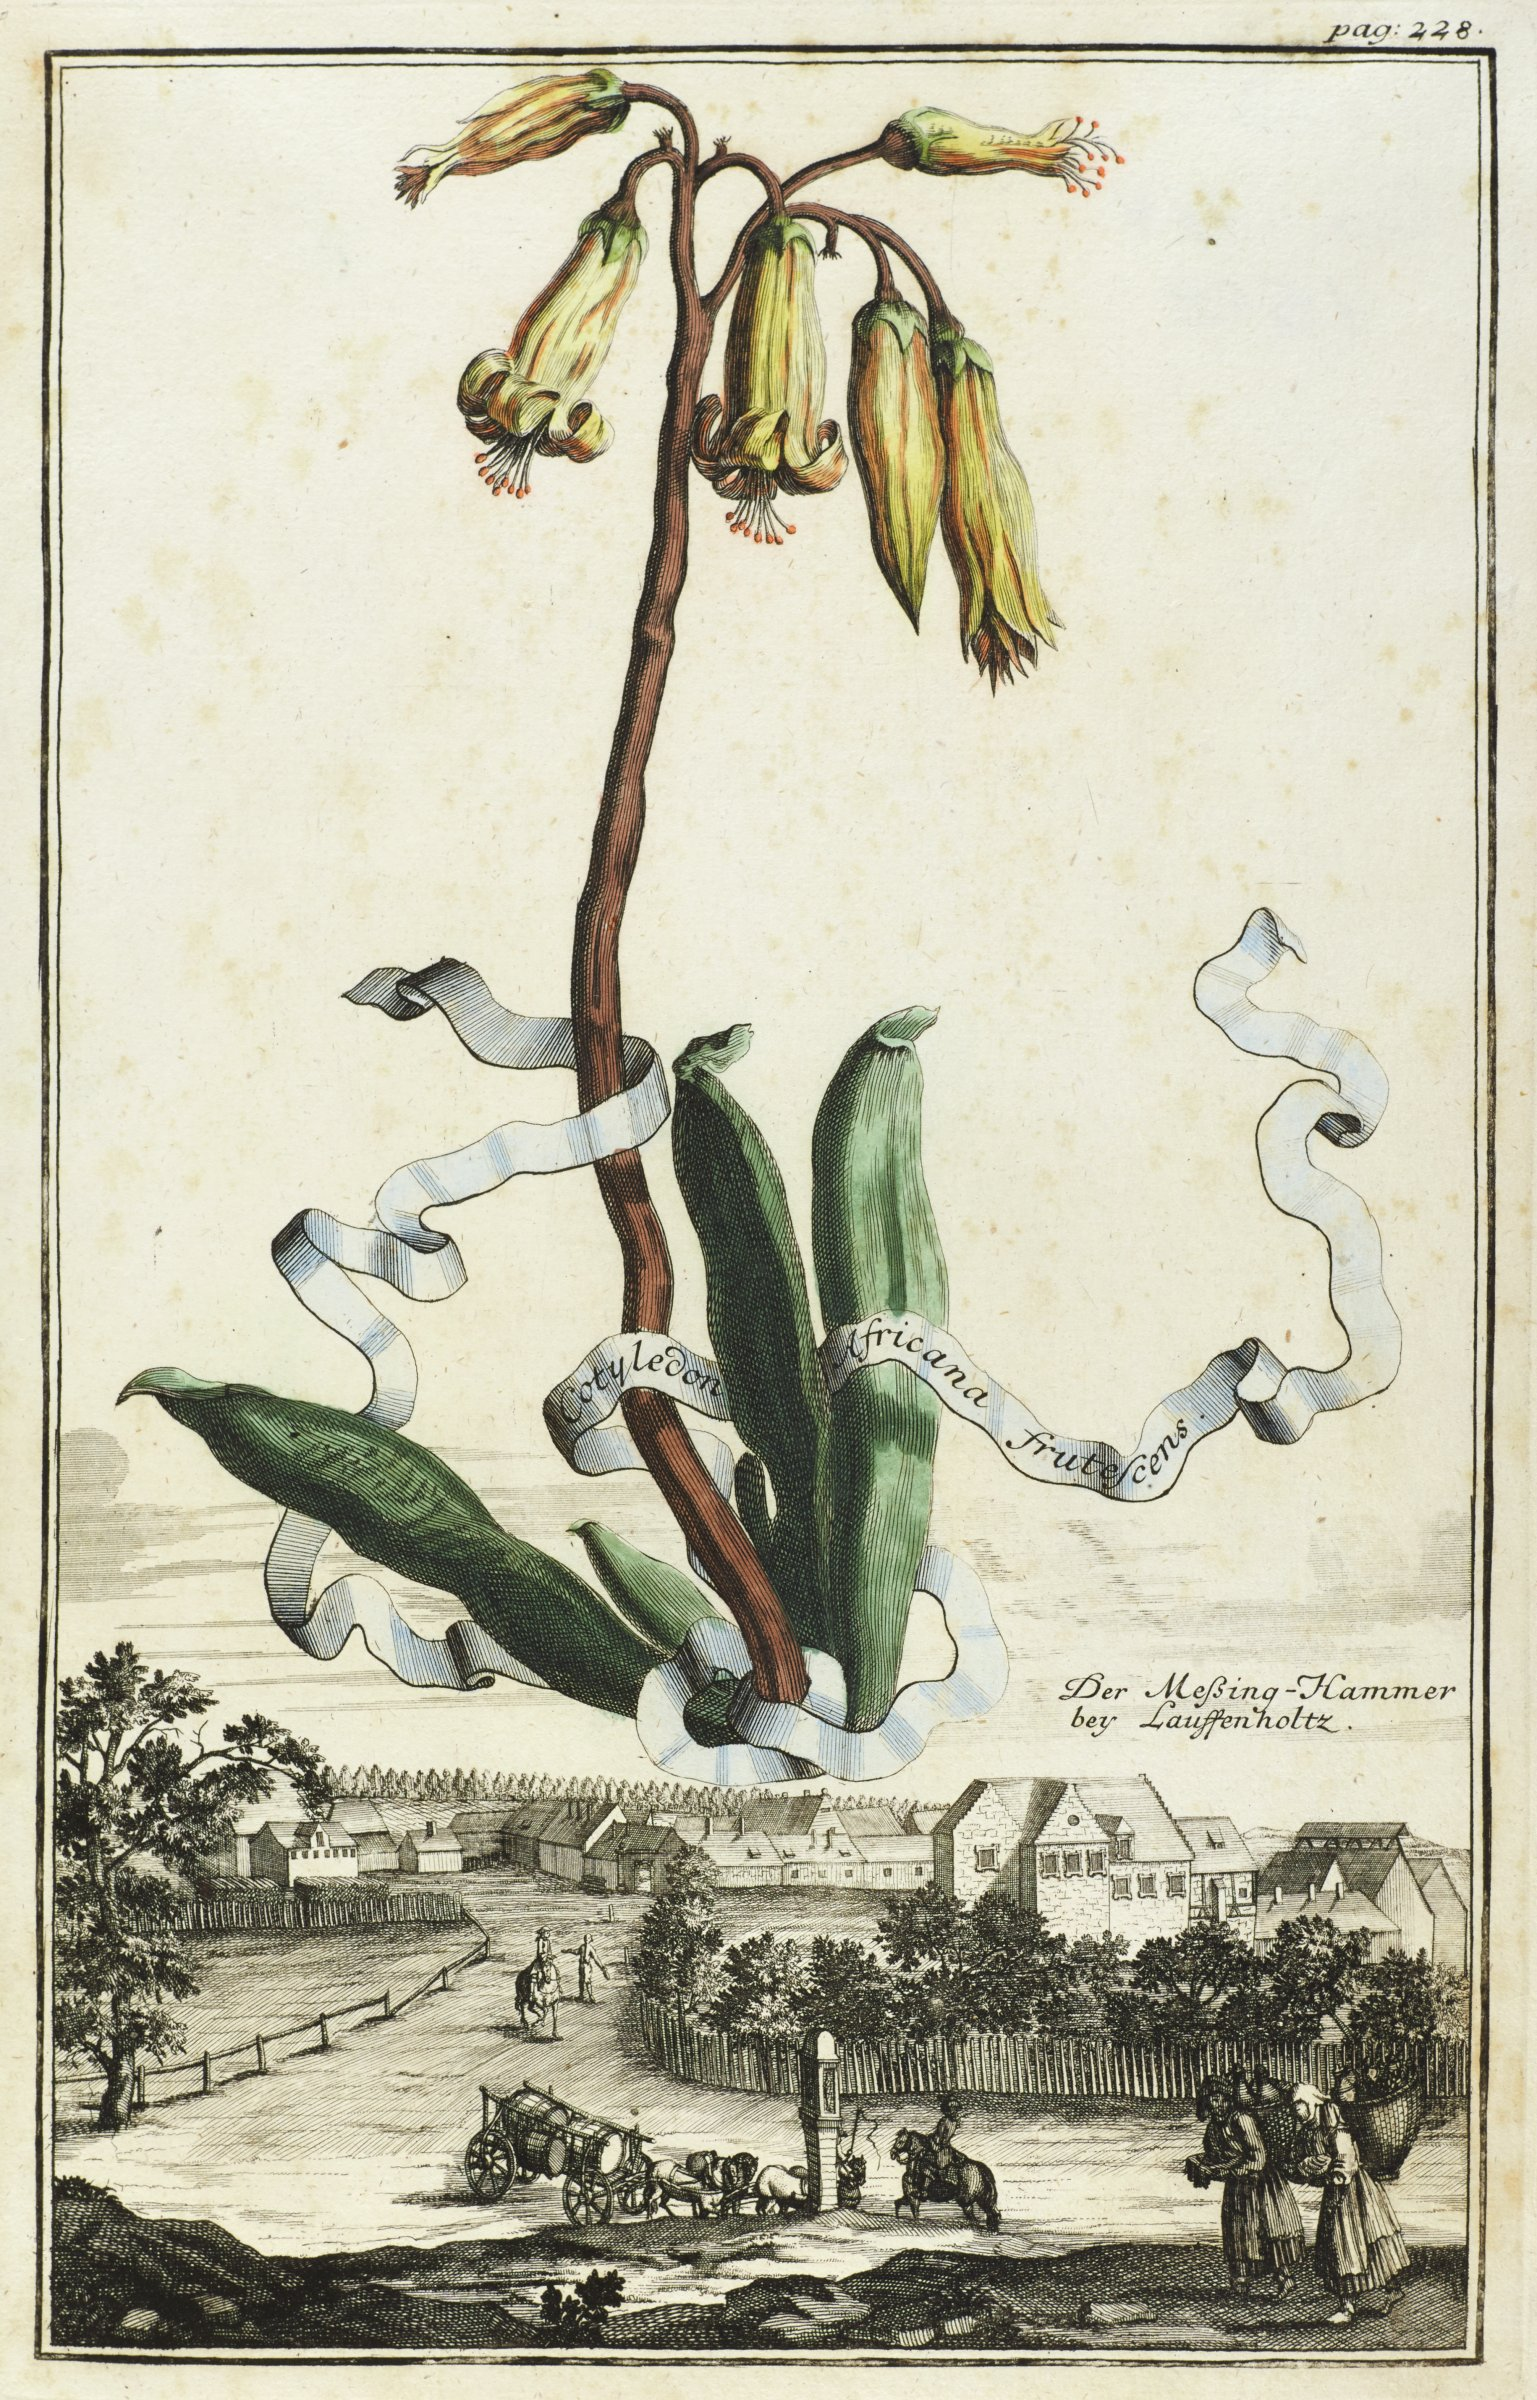 A large plant with yellow blossoms hovers above A townscape. The plant is hand-colored in watercolor.